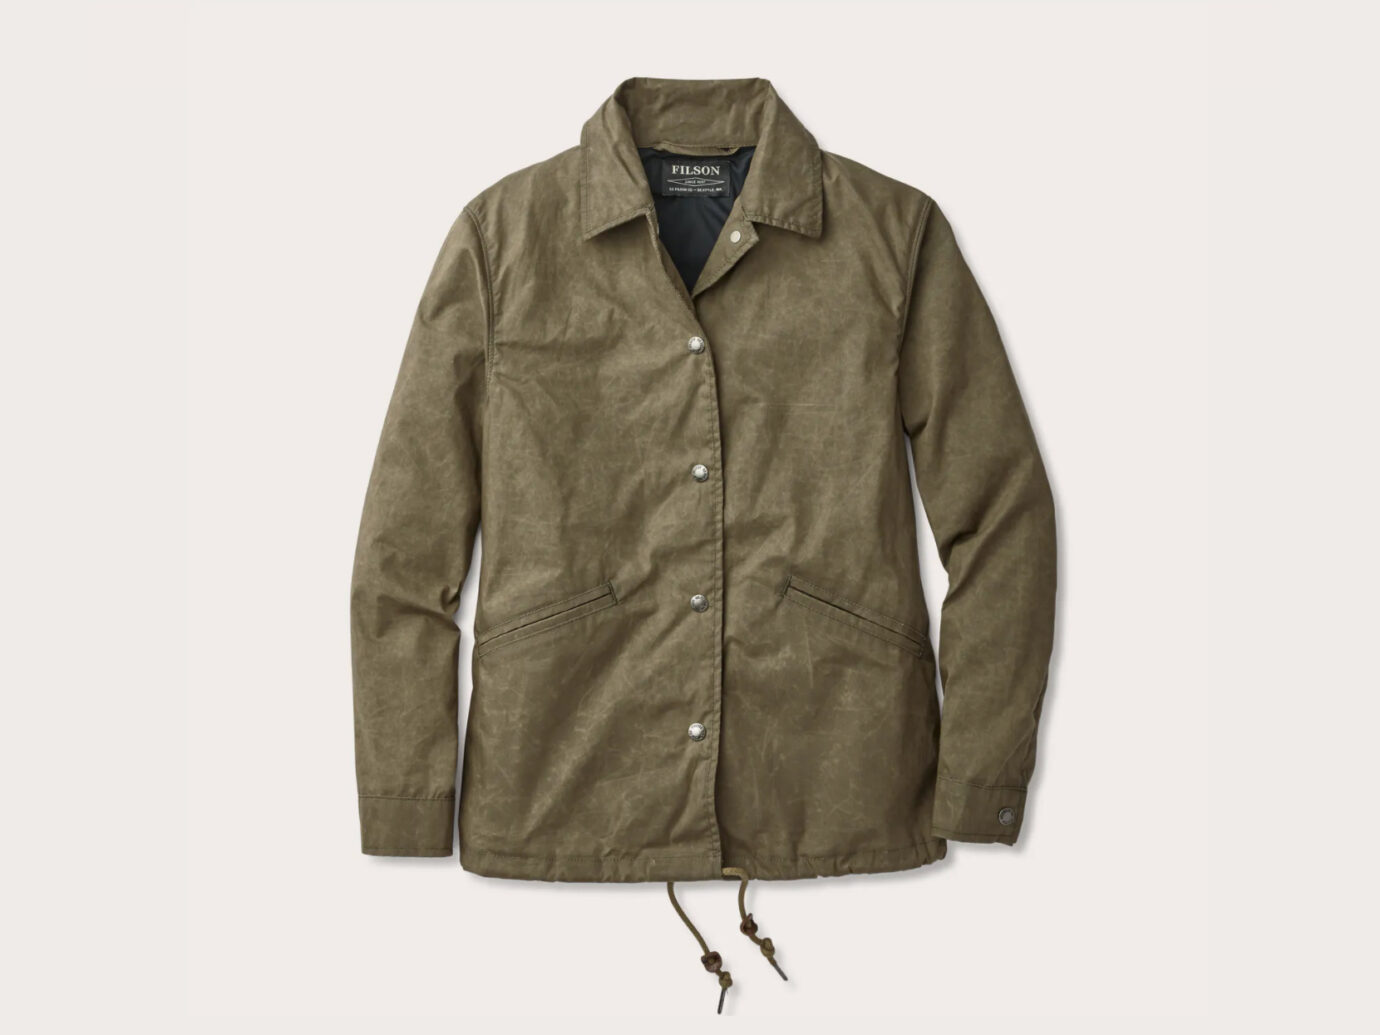 Filson Bushwax Supply Jacket